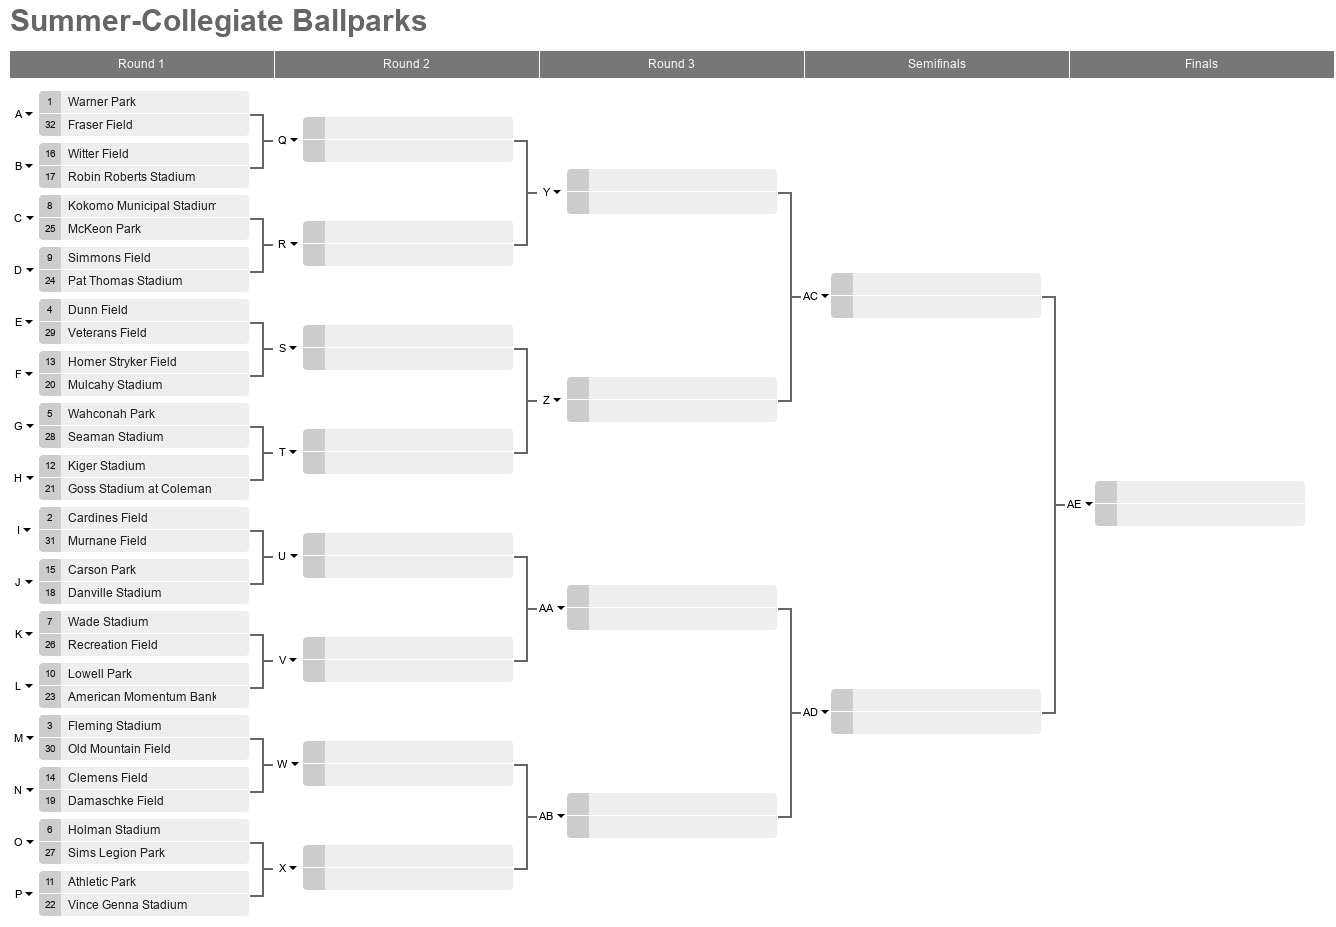 Best of the Ballpark brackets for summer collegiate